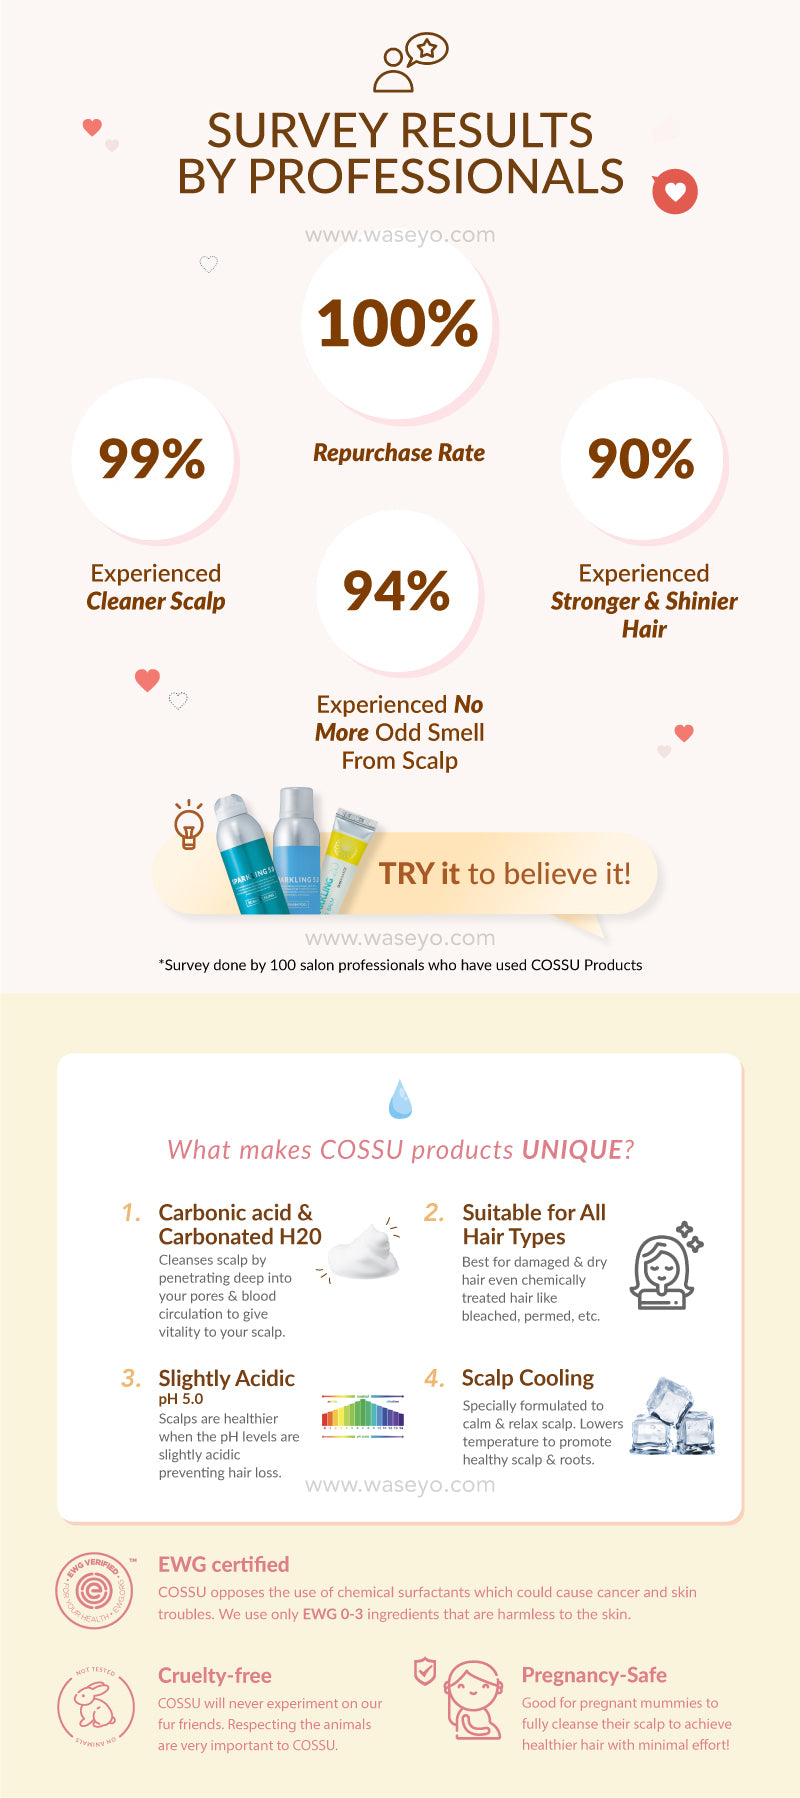 Here are the results of Professional Hair stylist in Korea after trying Cossu Hair Products! 100% of them said they will repurchase Cossu after trying the Hair Products. Cossu Hair products is suitable for all hair types - bleached, permed, dyed or even chemically treated hair. it is slightly acidic to keep your scalp at a healthy pH.